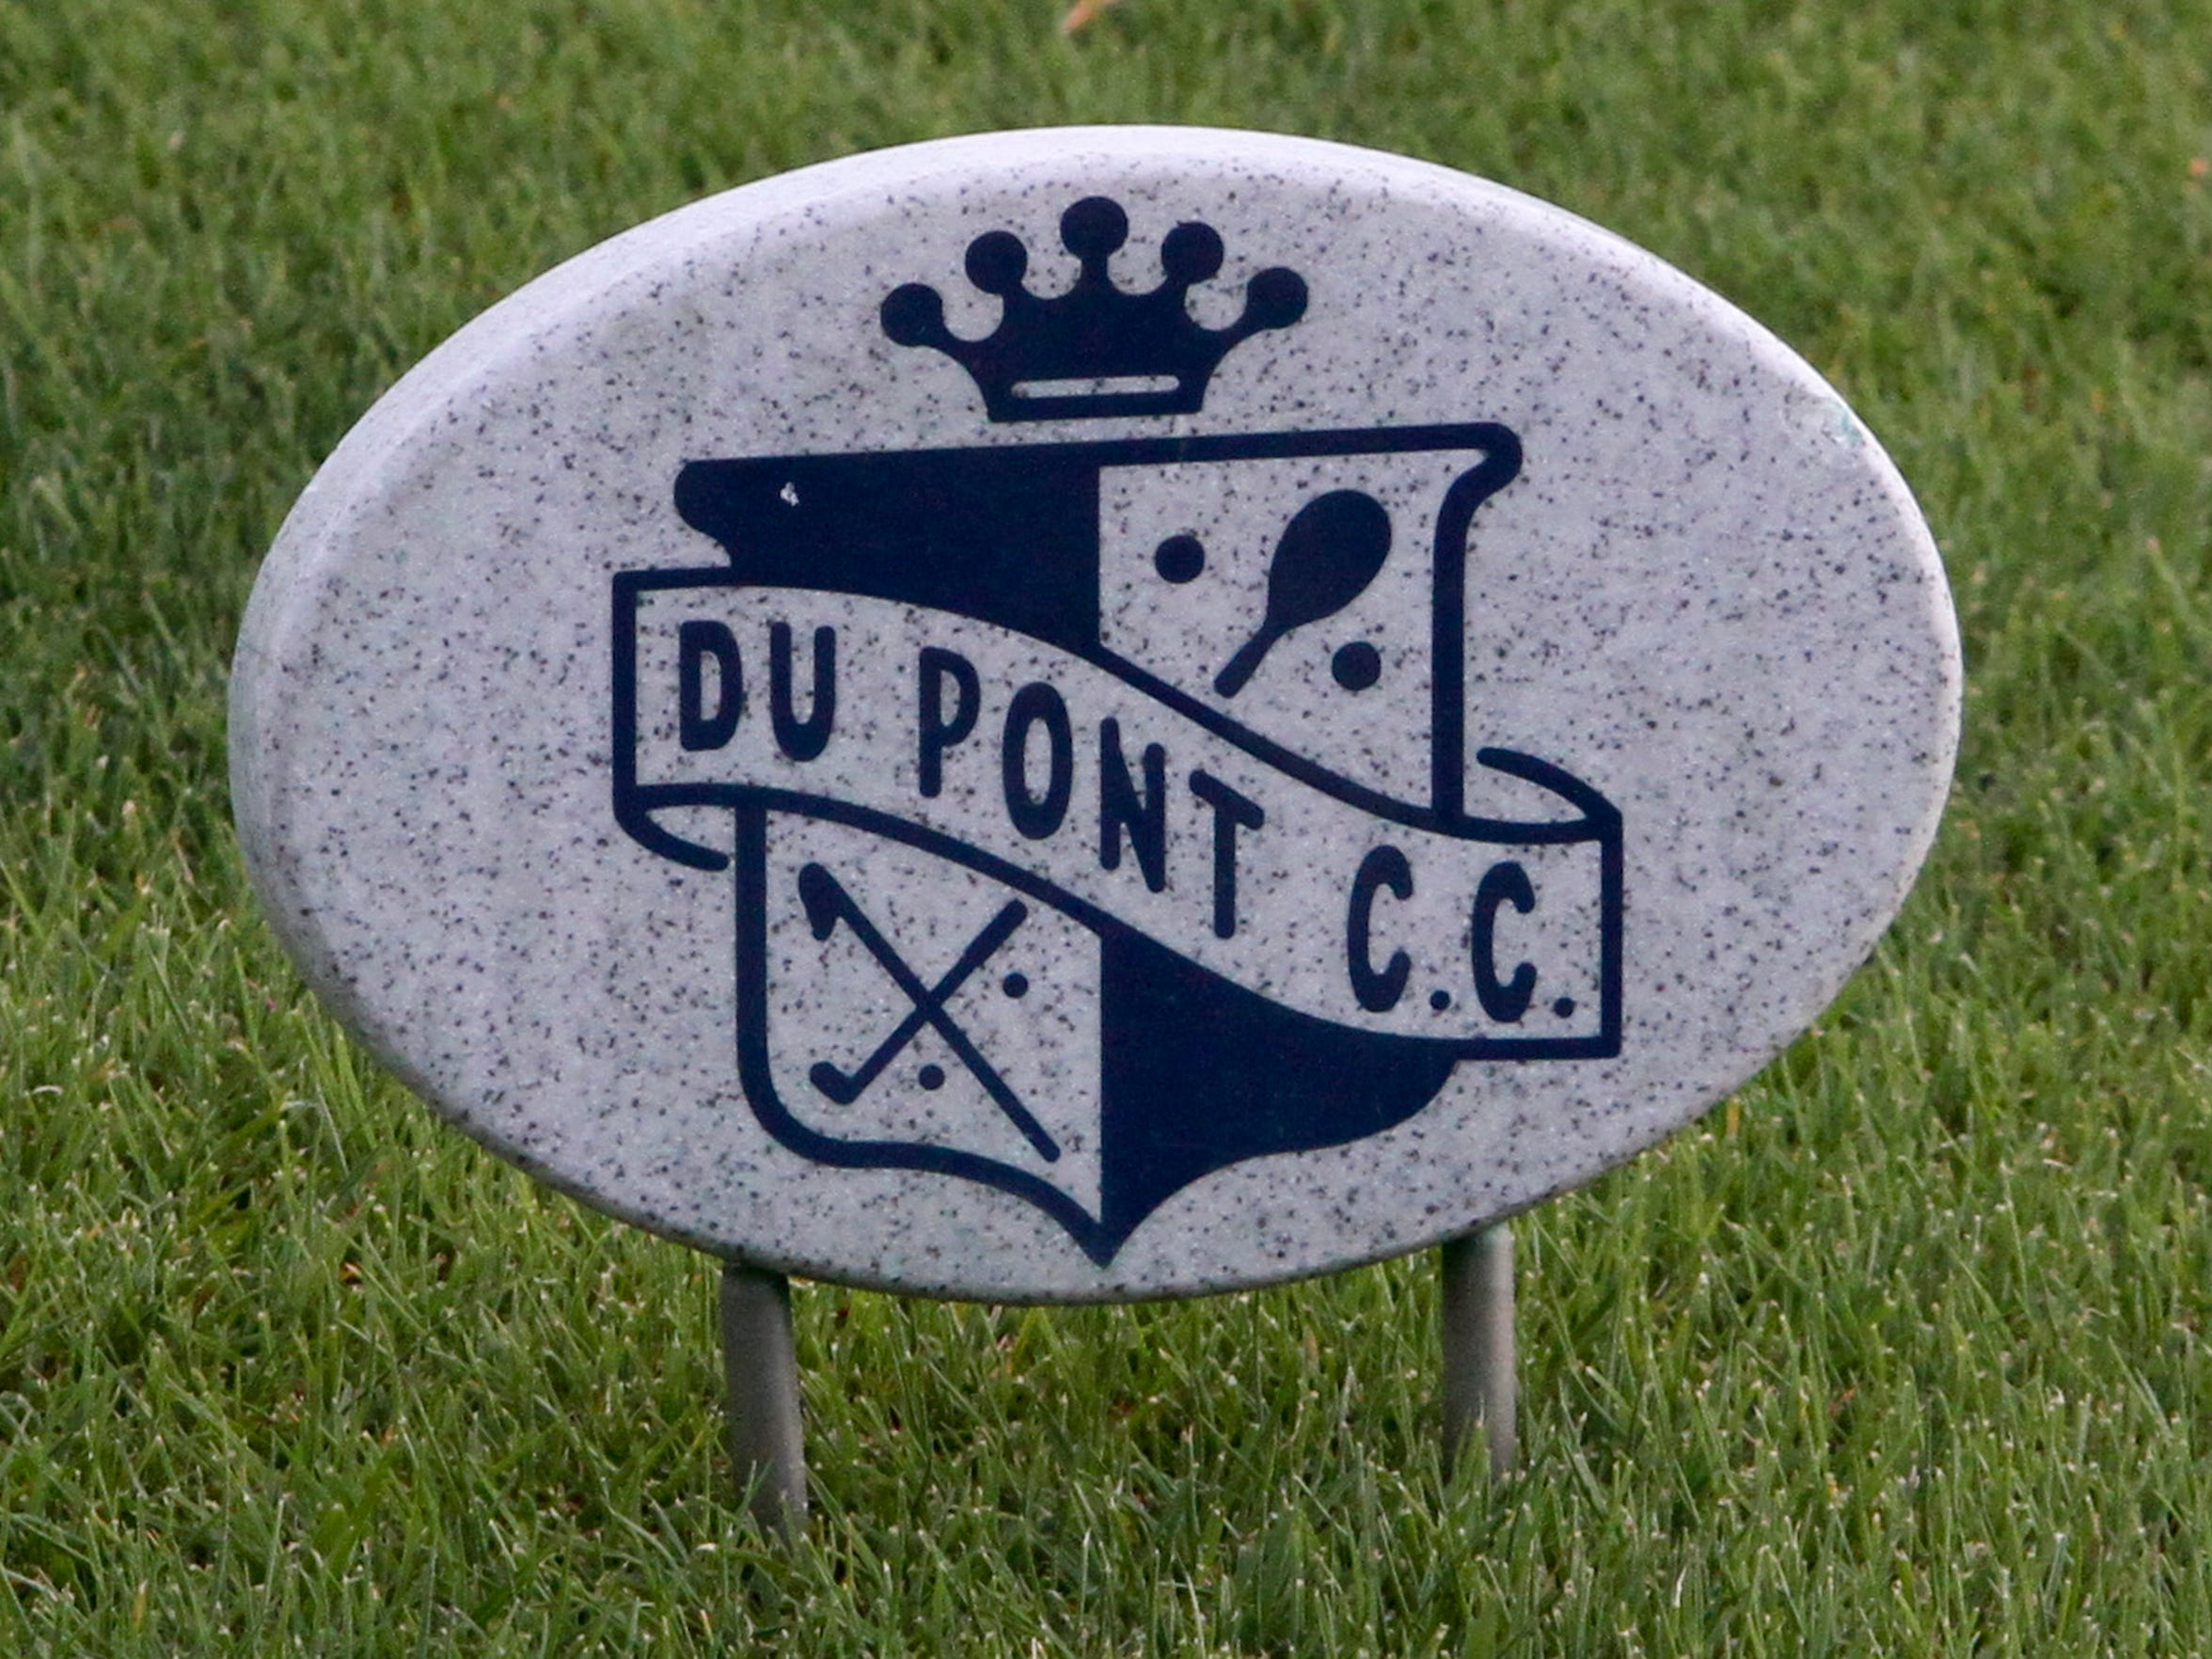 A tee marker at DuPont Country Club, Tuesday, April